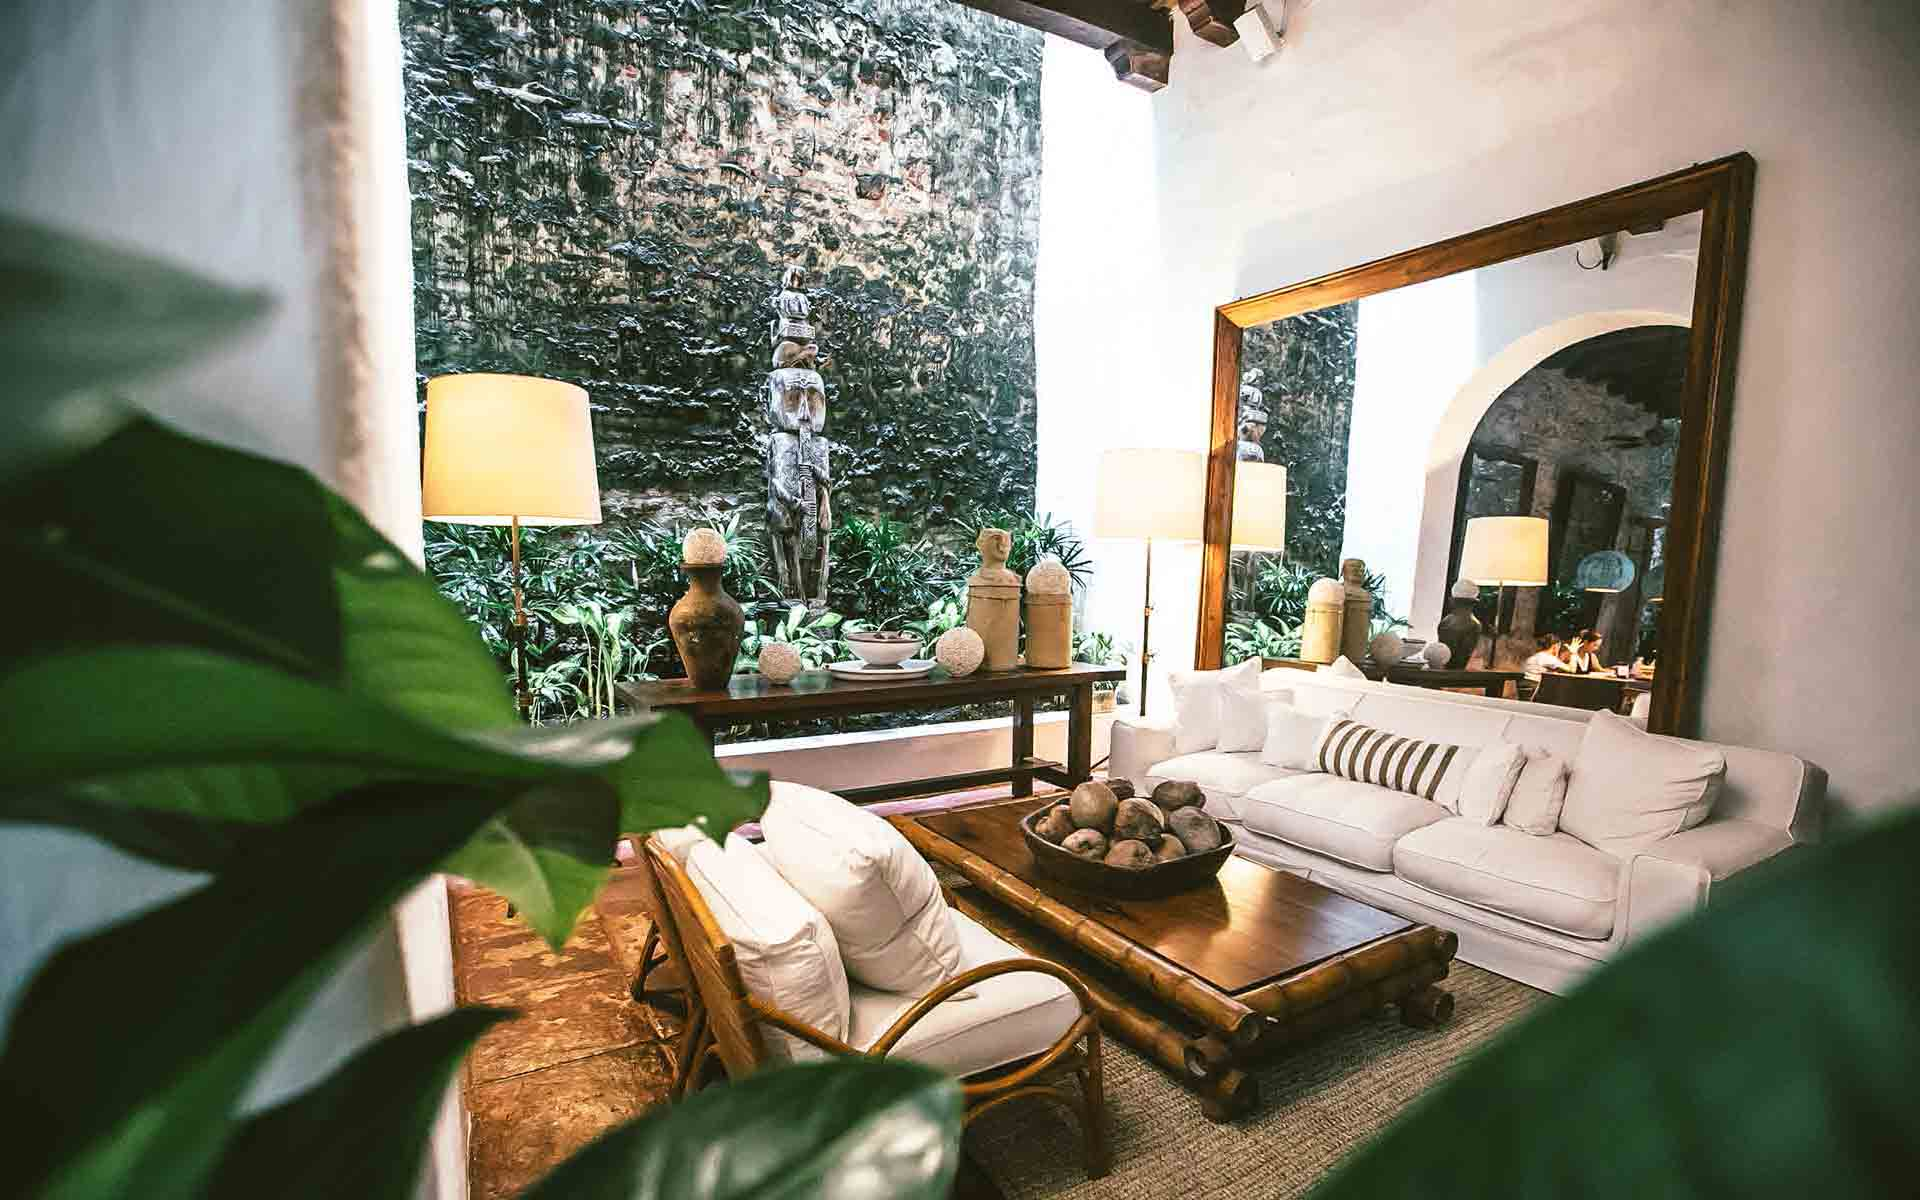 Reception and lounge area at Amarla boutique hotel in Cartagena